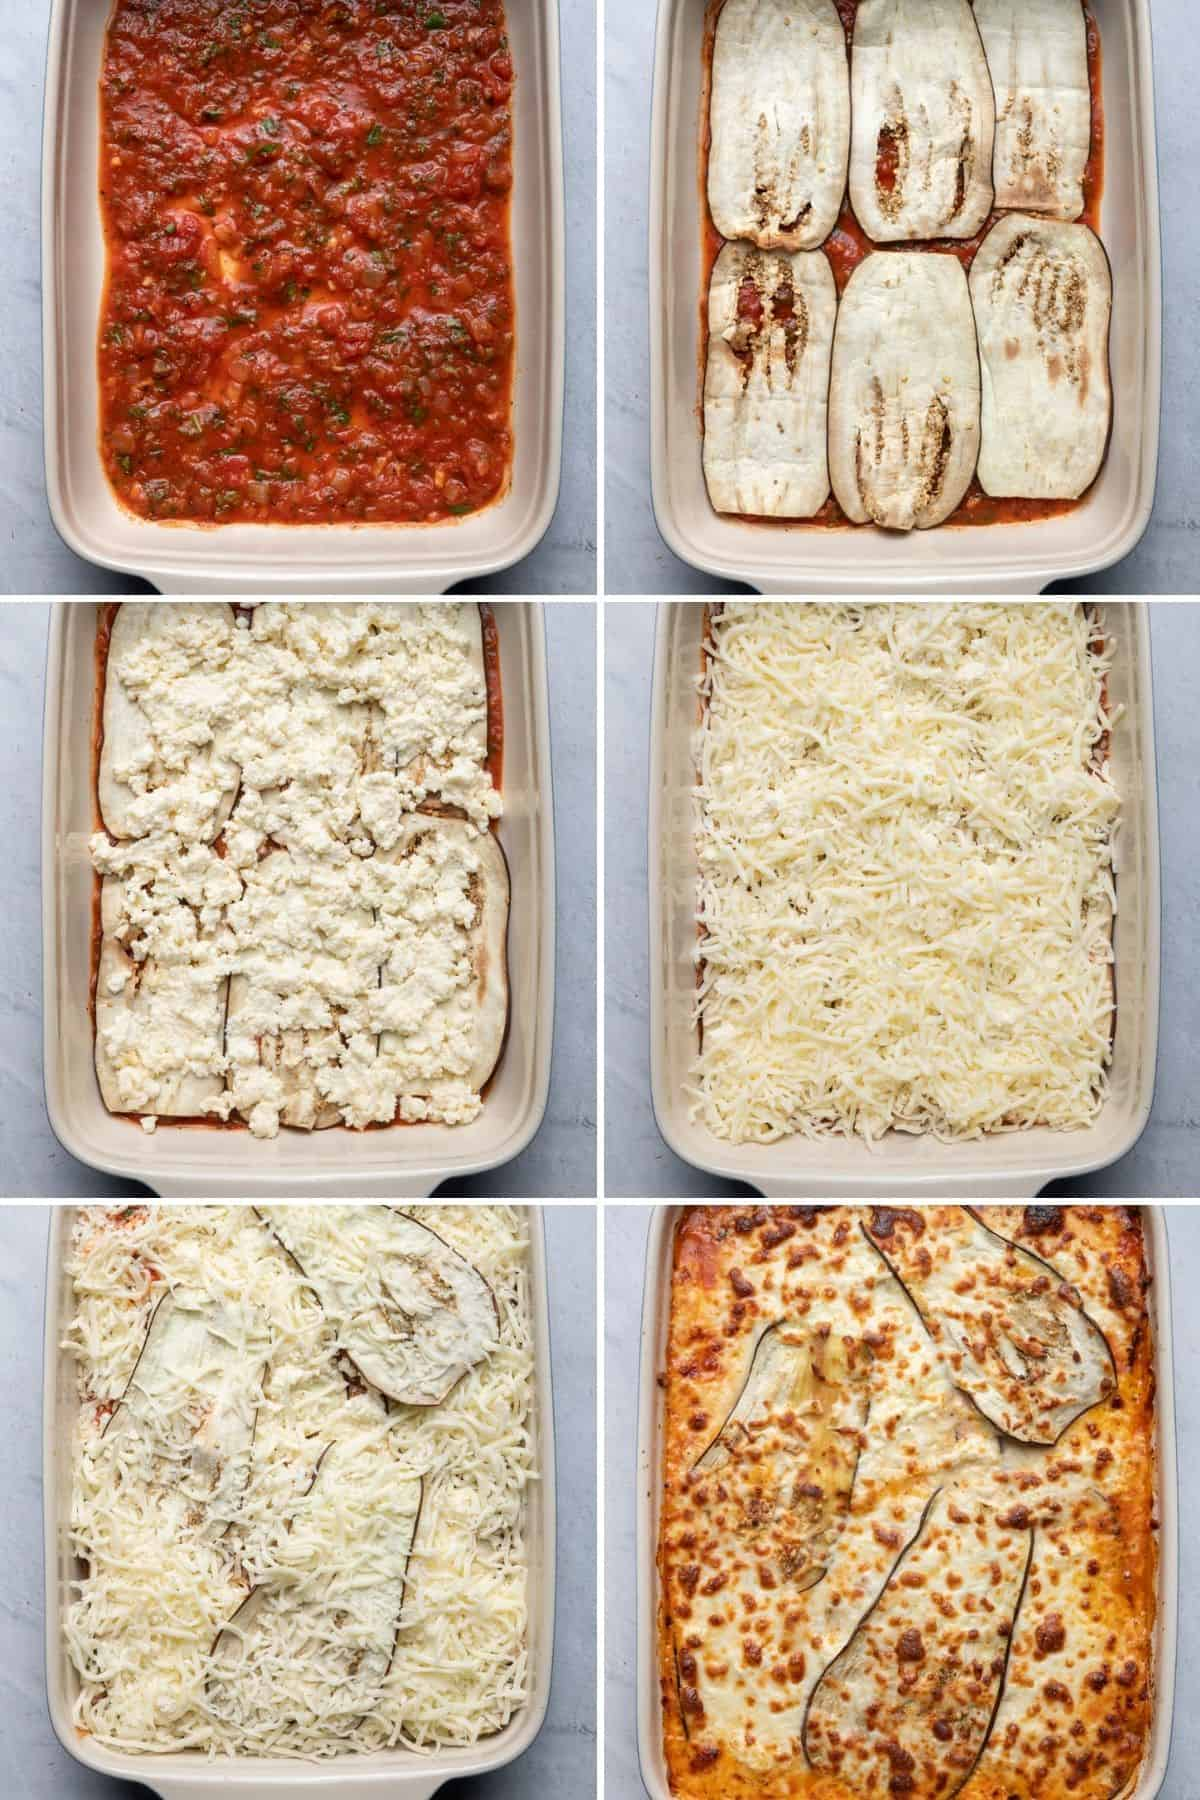 6 image collage to show the layering of the eggplant lasagna